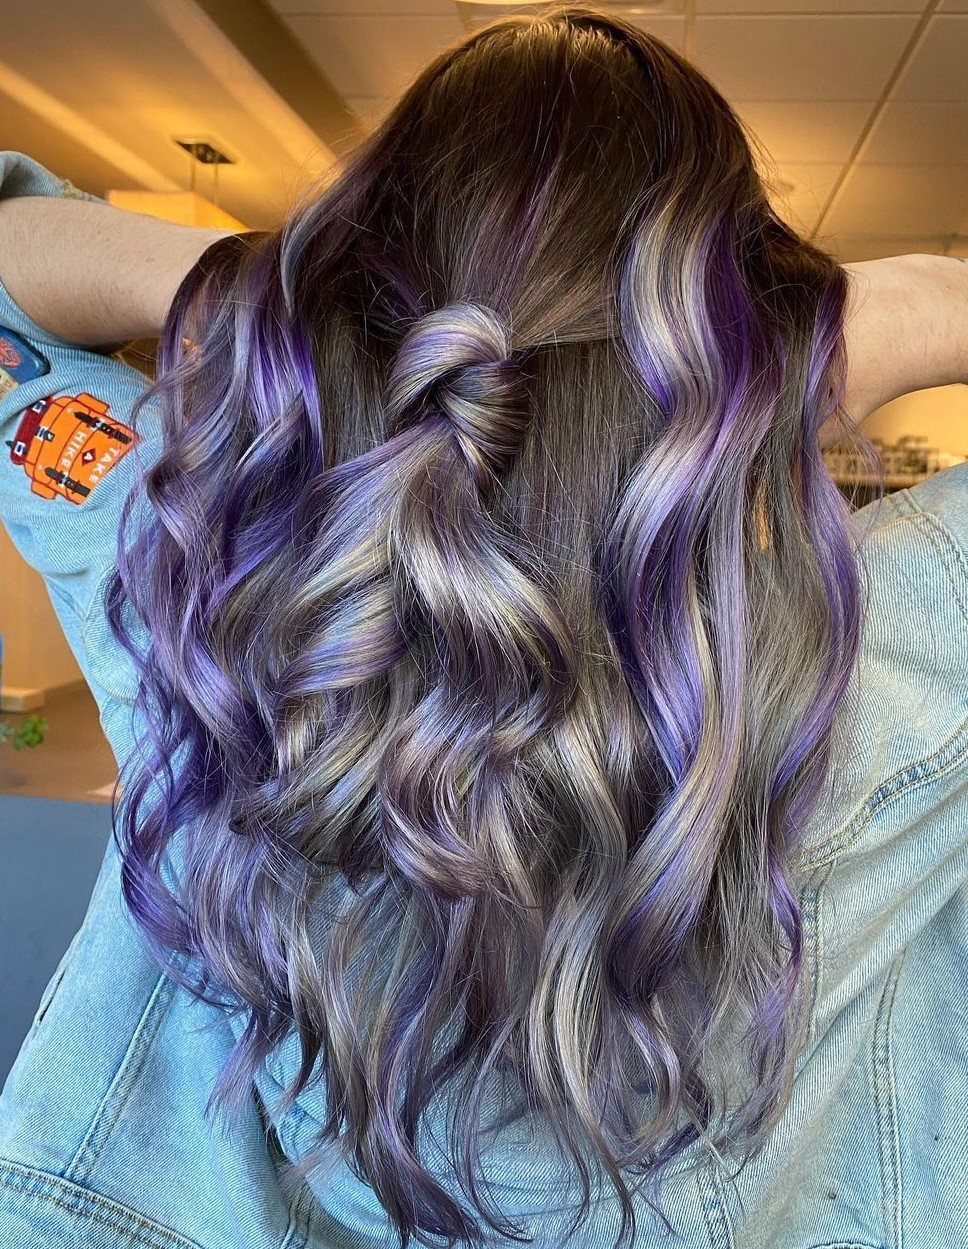 Classy Brunette Hair with Purple Highlights